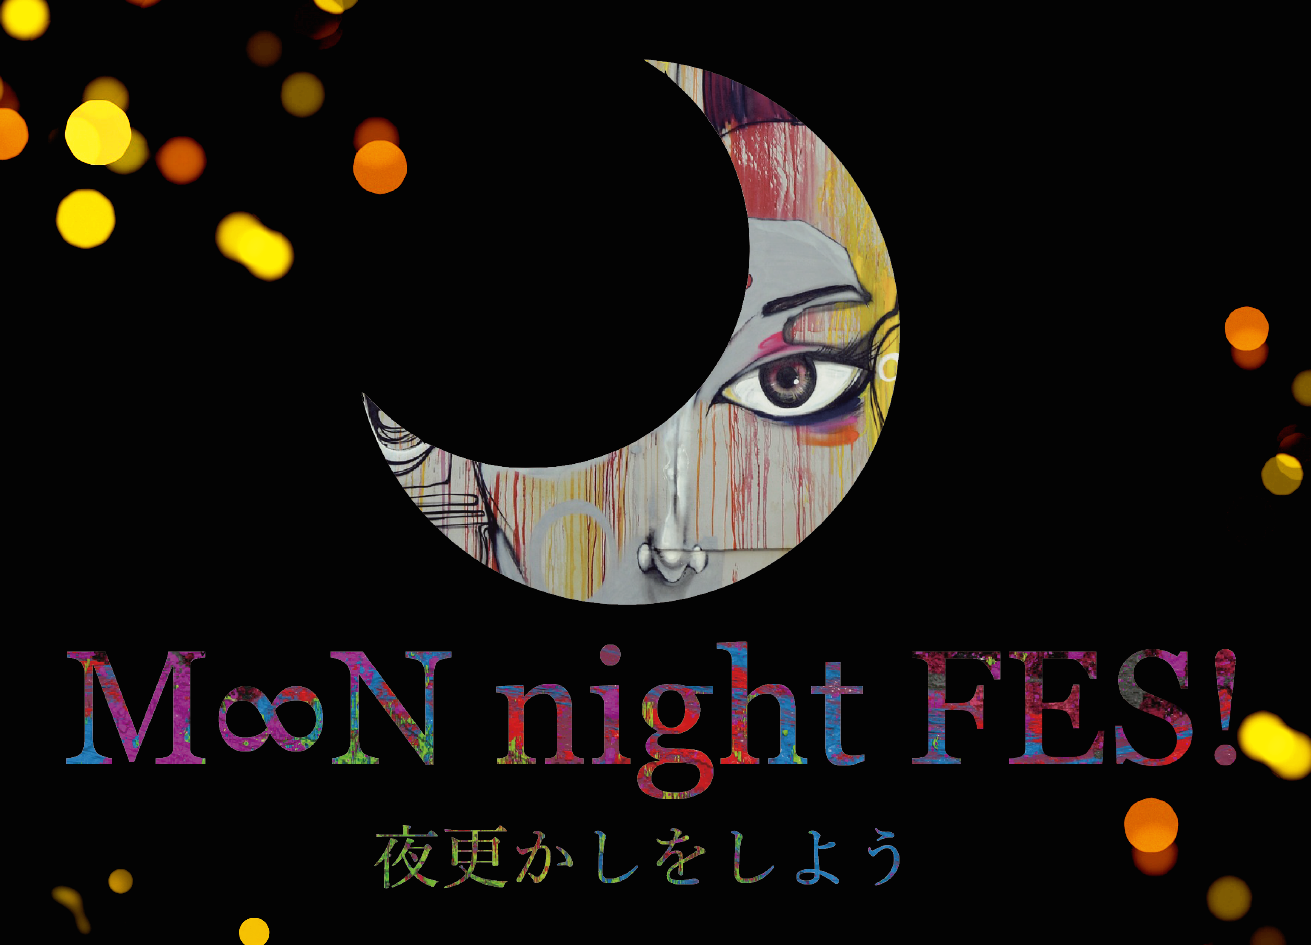 M∞N night FES! vol.2